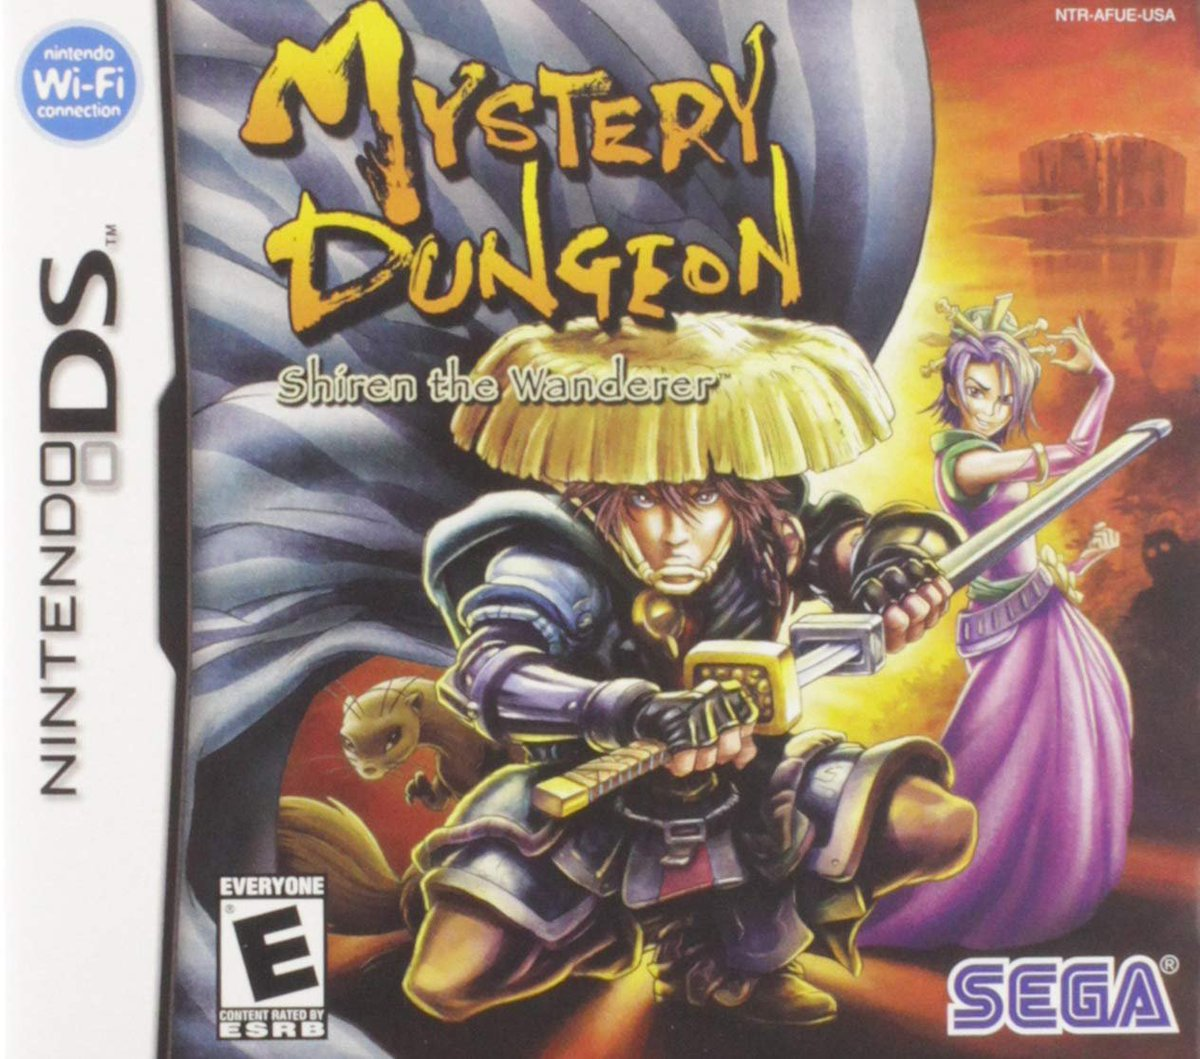 Mystery Dungeon Shiren the Wanderer (DS) is $19.99 brand new on Amazon: 16